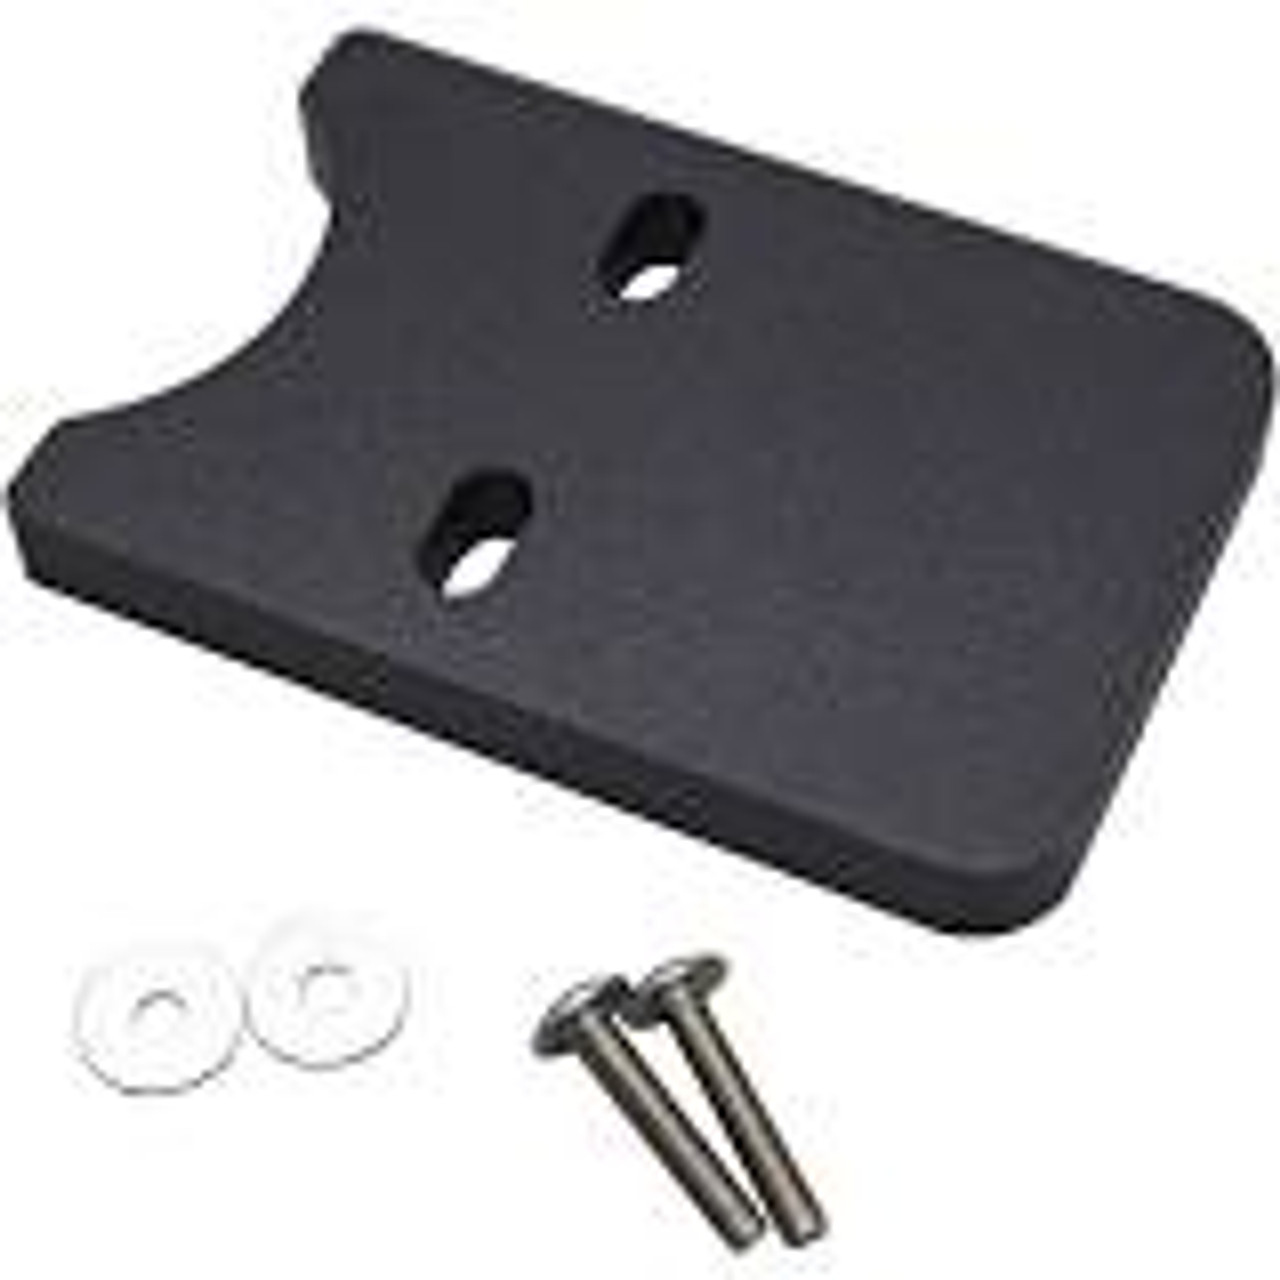 Transducer Mounting Plate for Kayaks